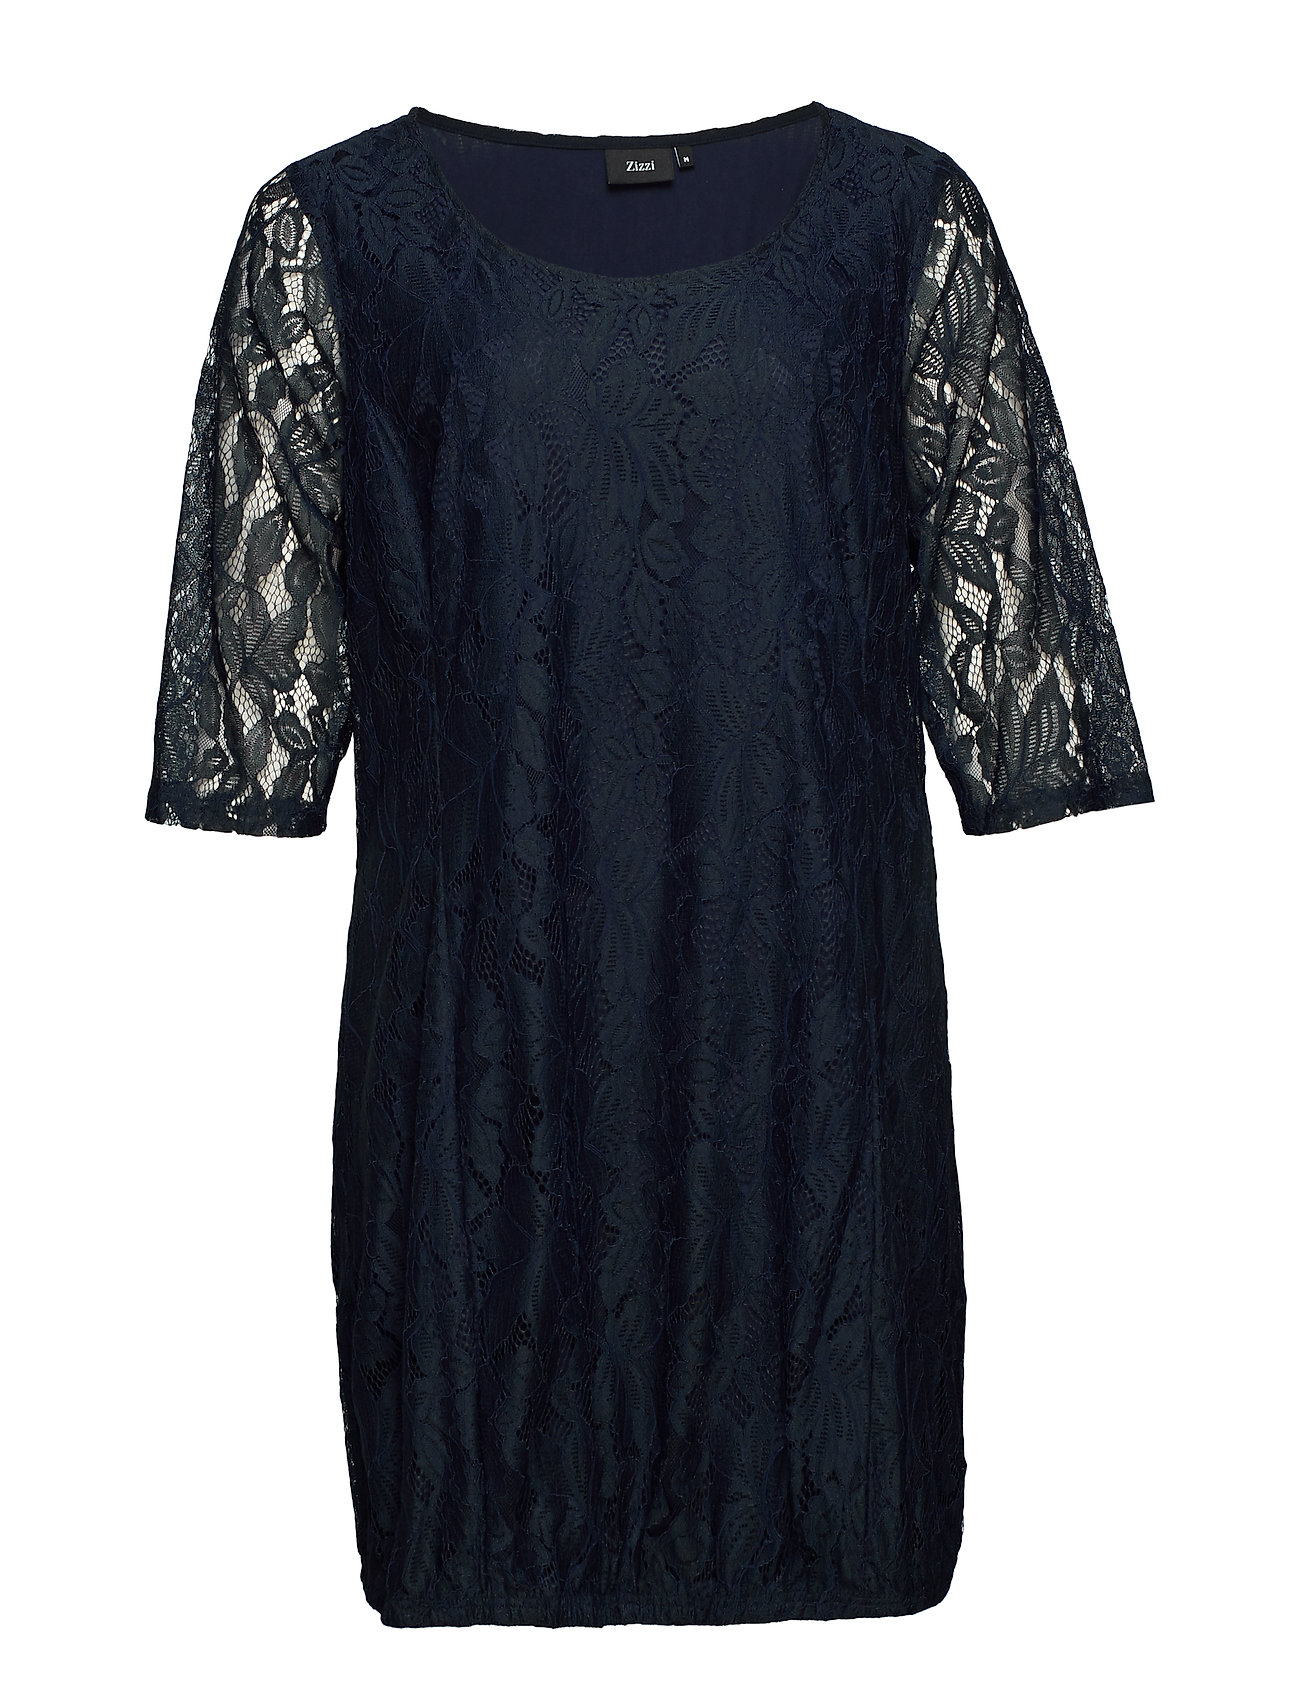 Zizzi XAPONI, 3/4, LACE DRESS - NIGHT SKY